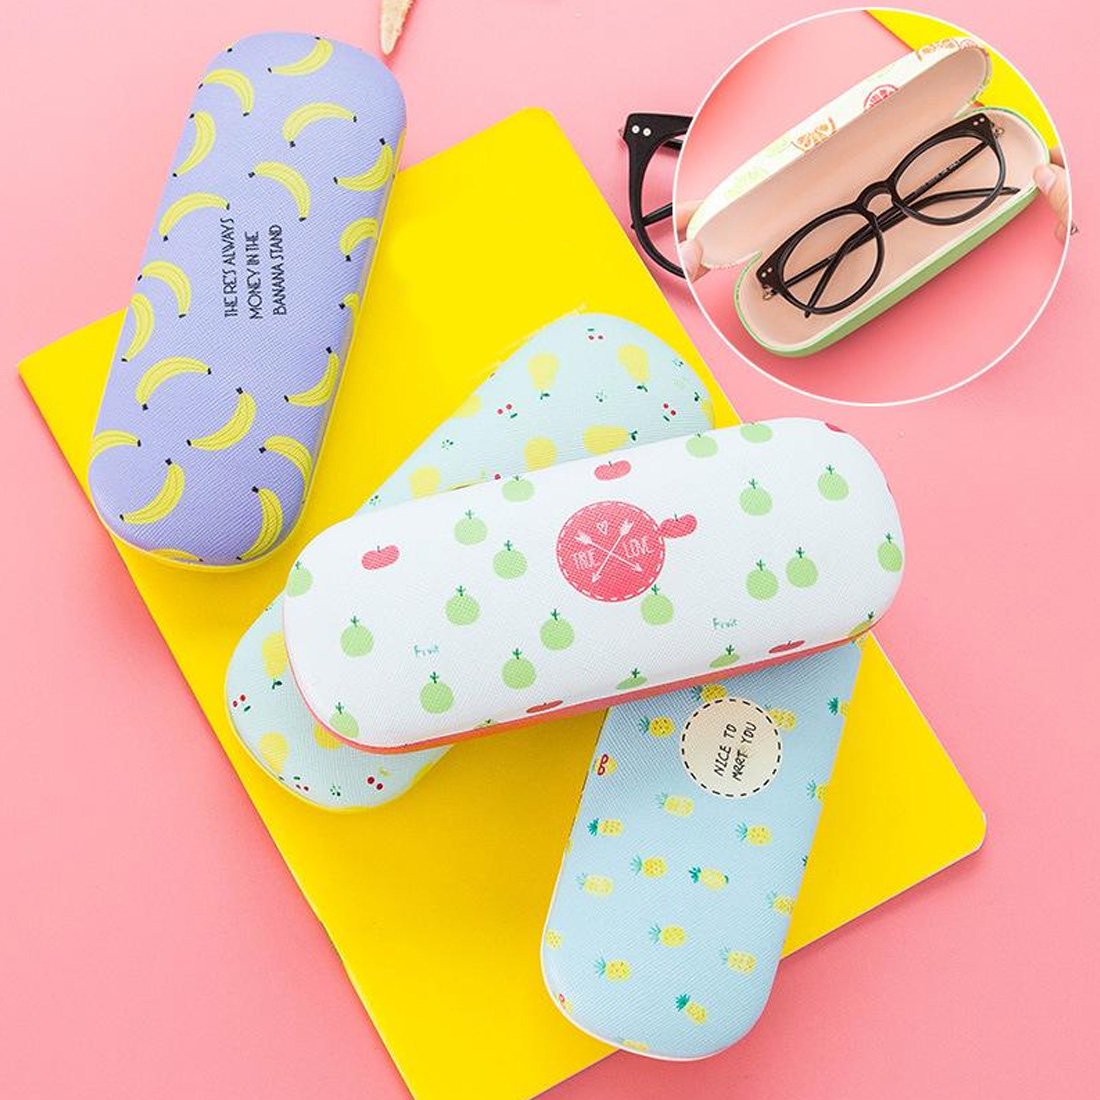 Unisex Protable Fruit Print Sunglasses Hard Eye Glasses Case Eyewear Protector Box Pouch Bag lentes de contacto de color in Eyewear Accessories from Apparel Accessories